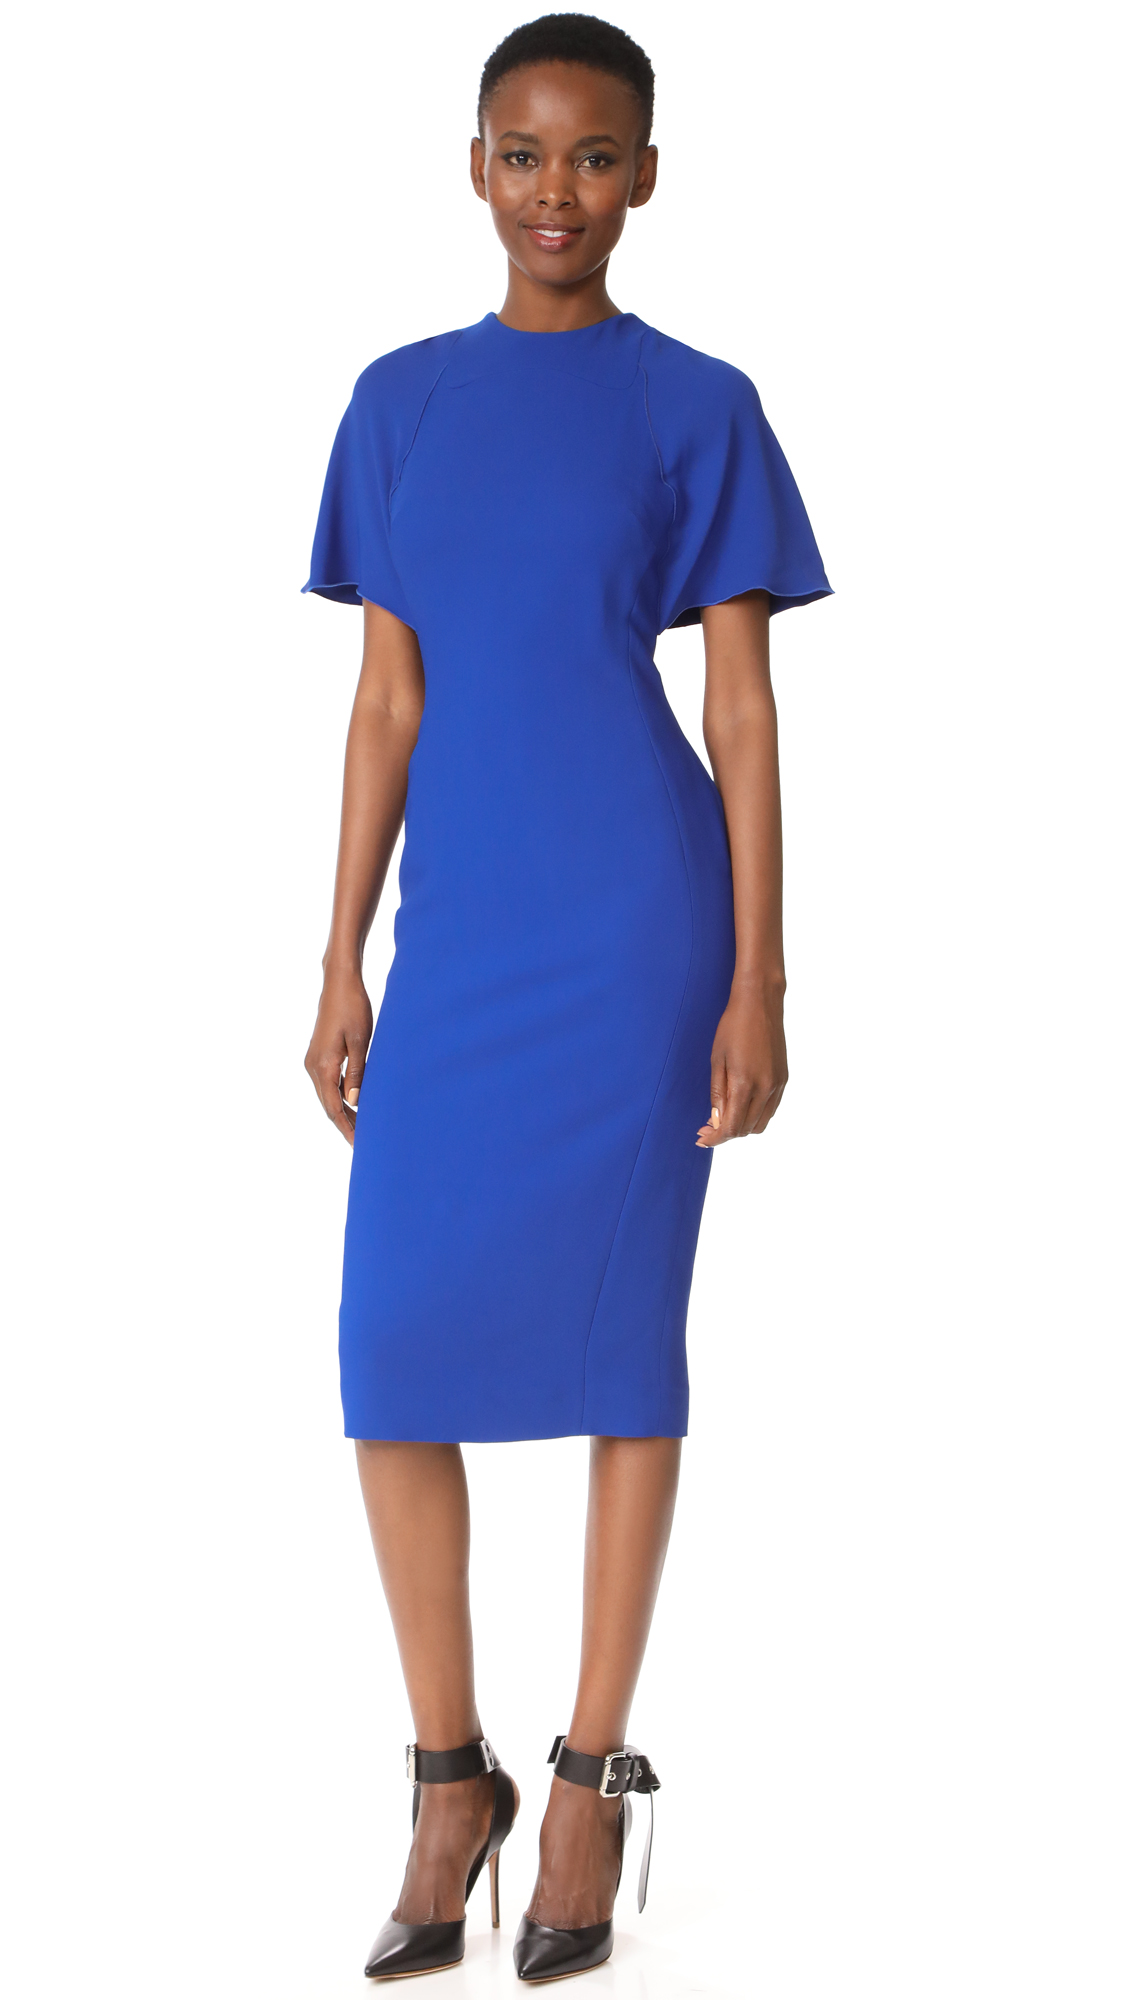 Antonio Berardi Short Sleeve Dress - Blu Elettrico